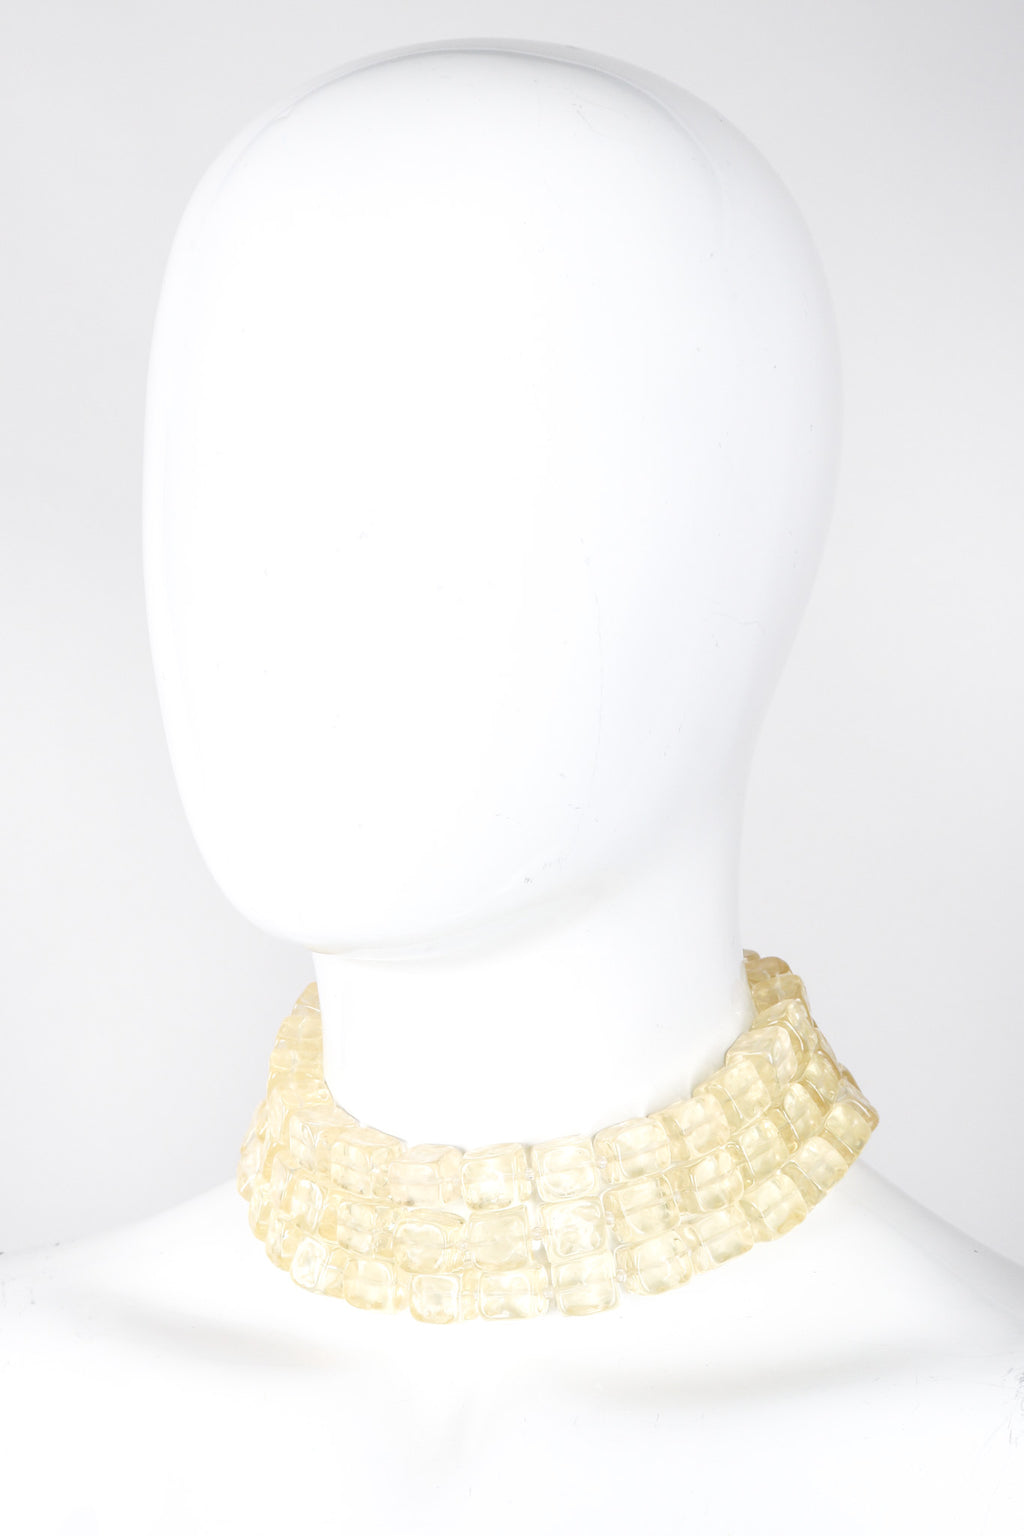 Recess Los Angeles Vintage Karl Lagerfeld Resin Frosted Cubes Chain Link Gold Collar Choker